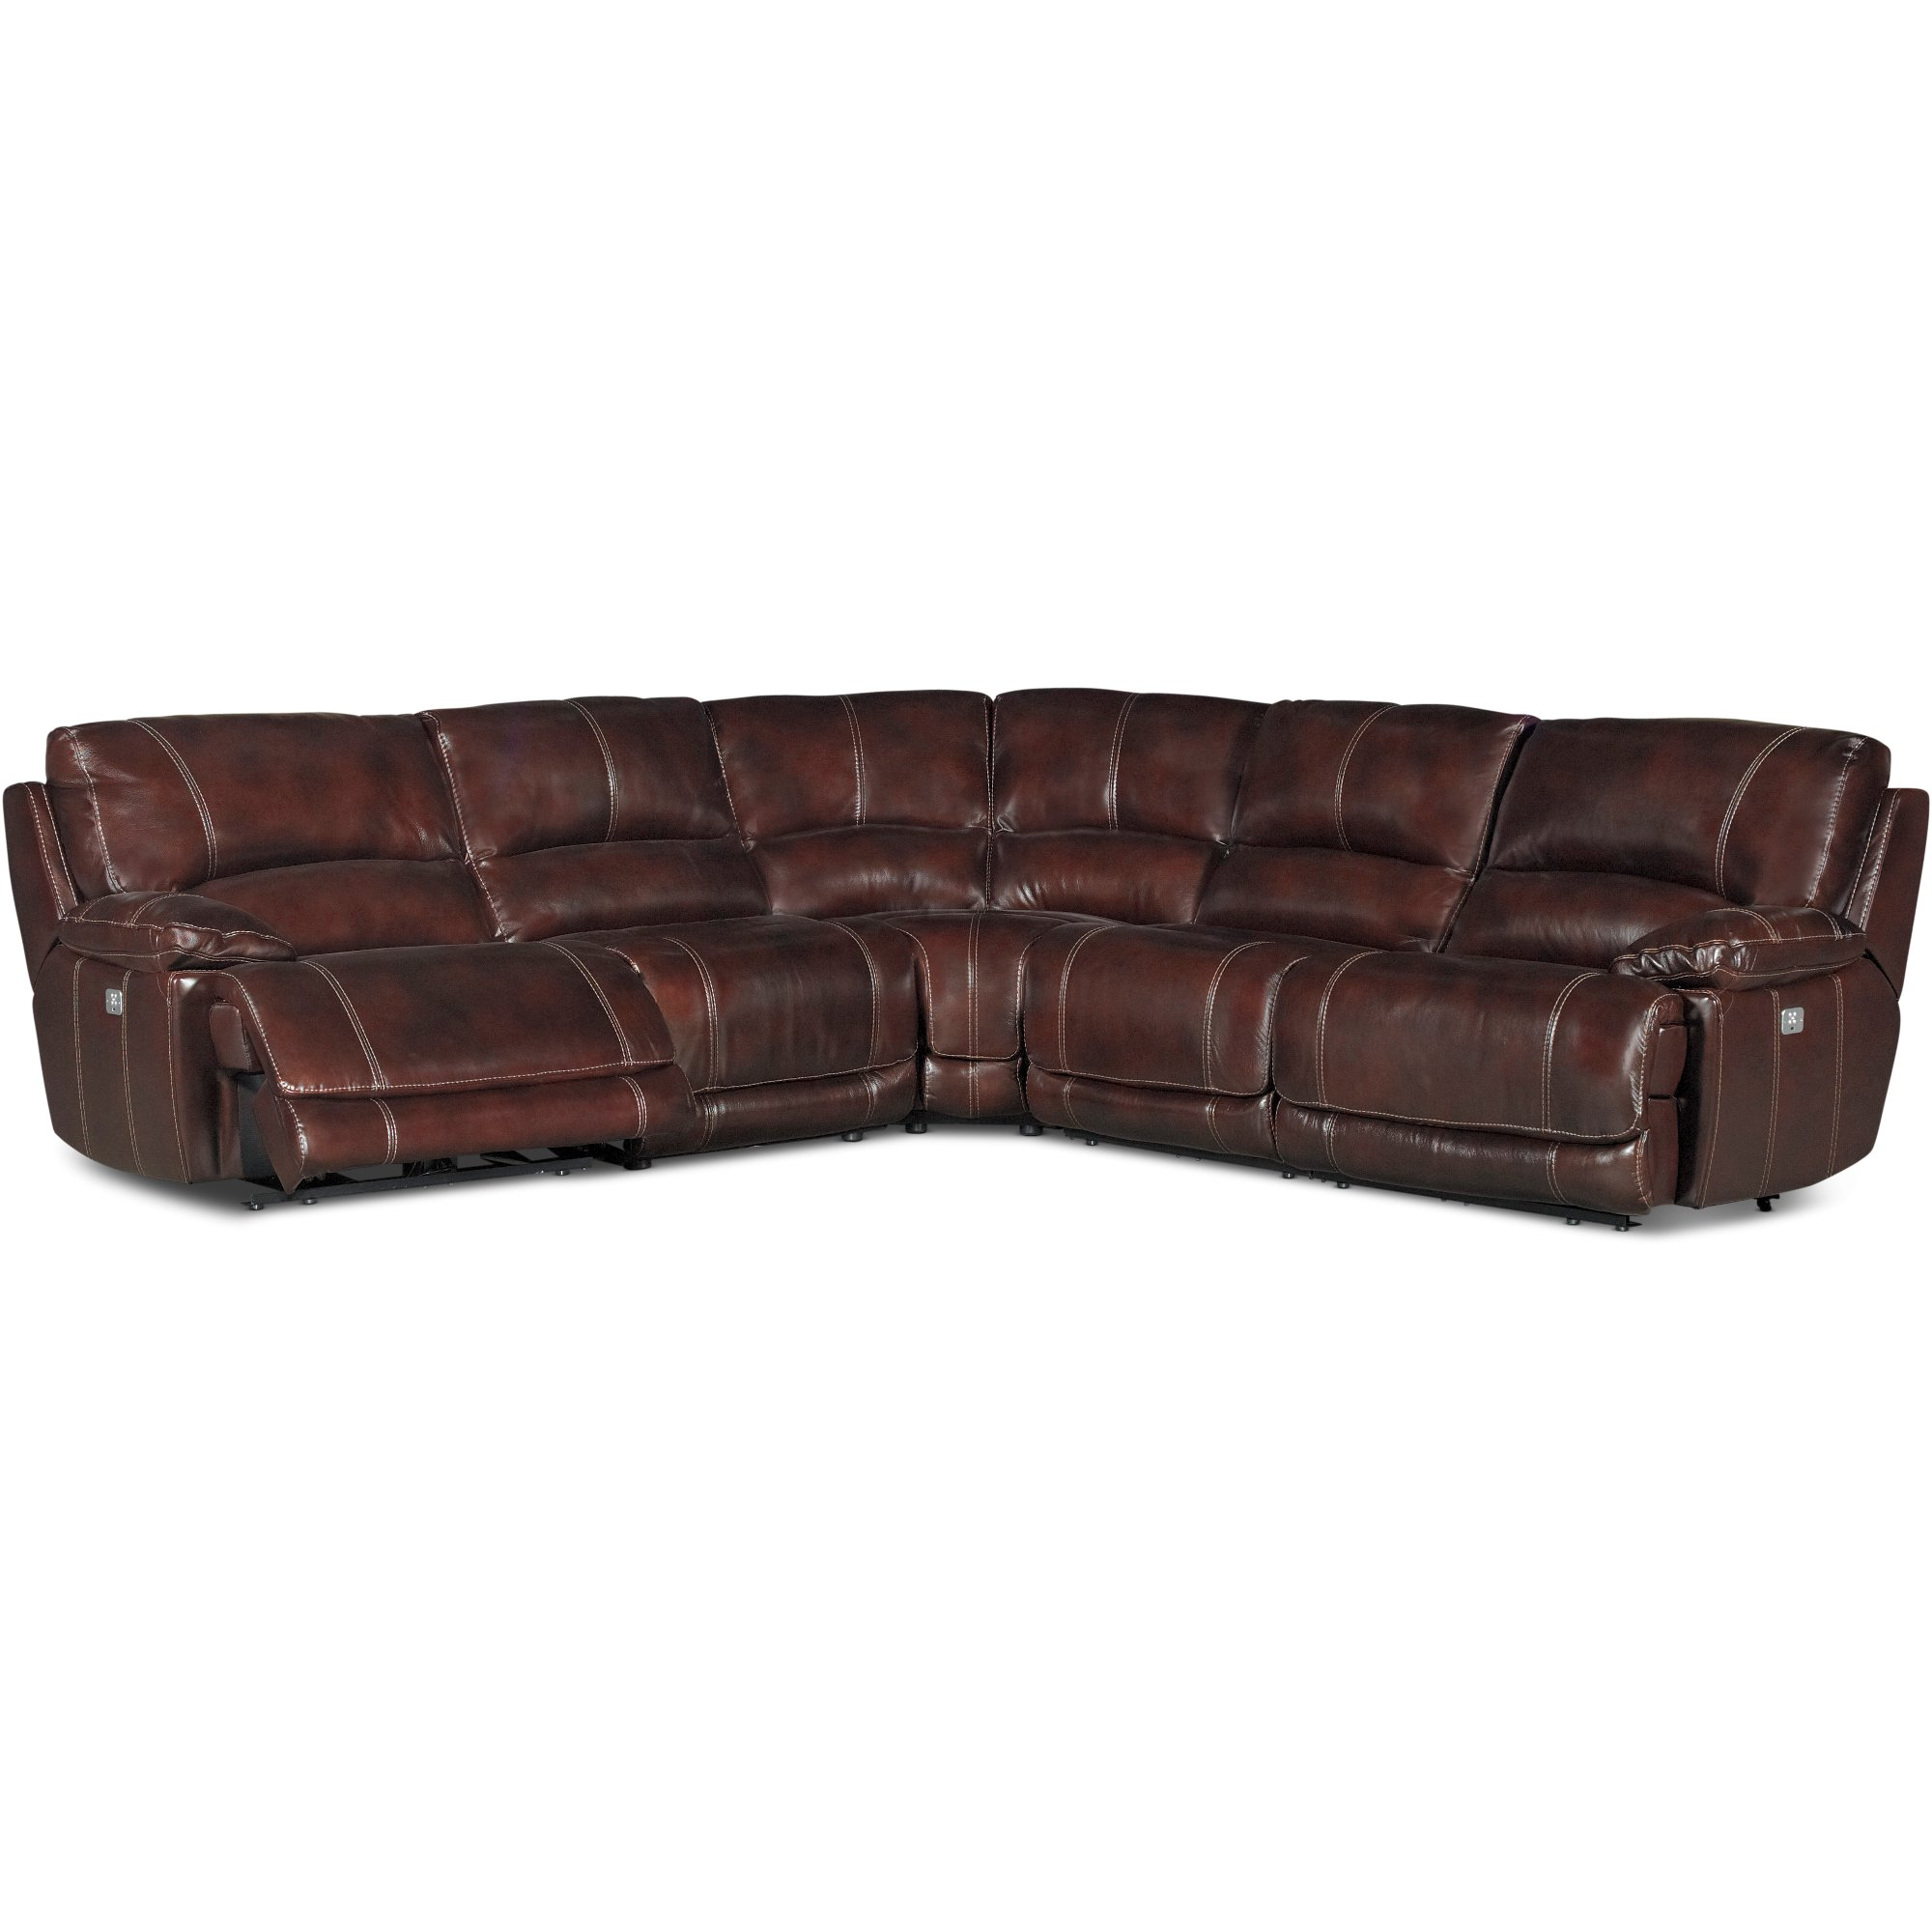 Buy living room furniture, couches, sectionals & tables - Page 6 ...